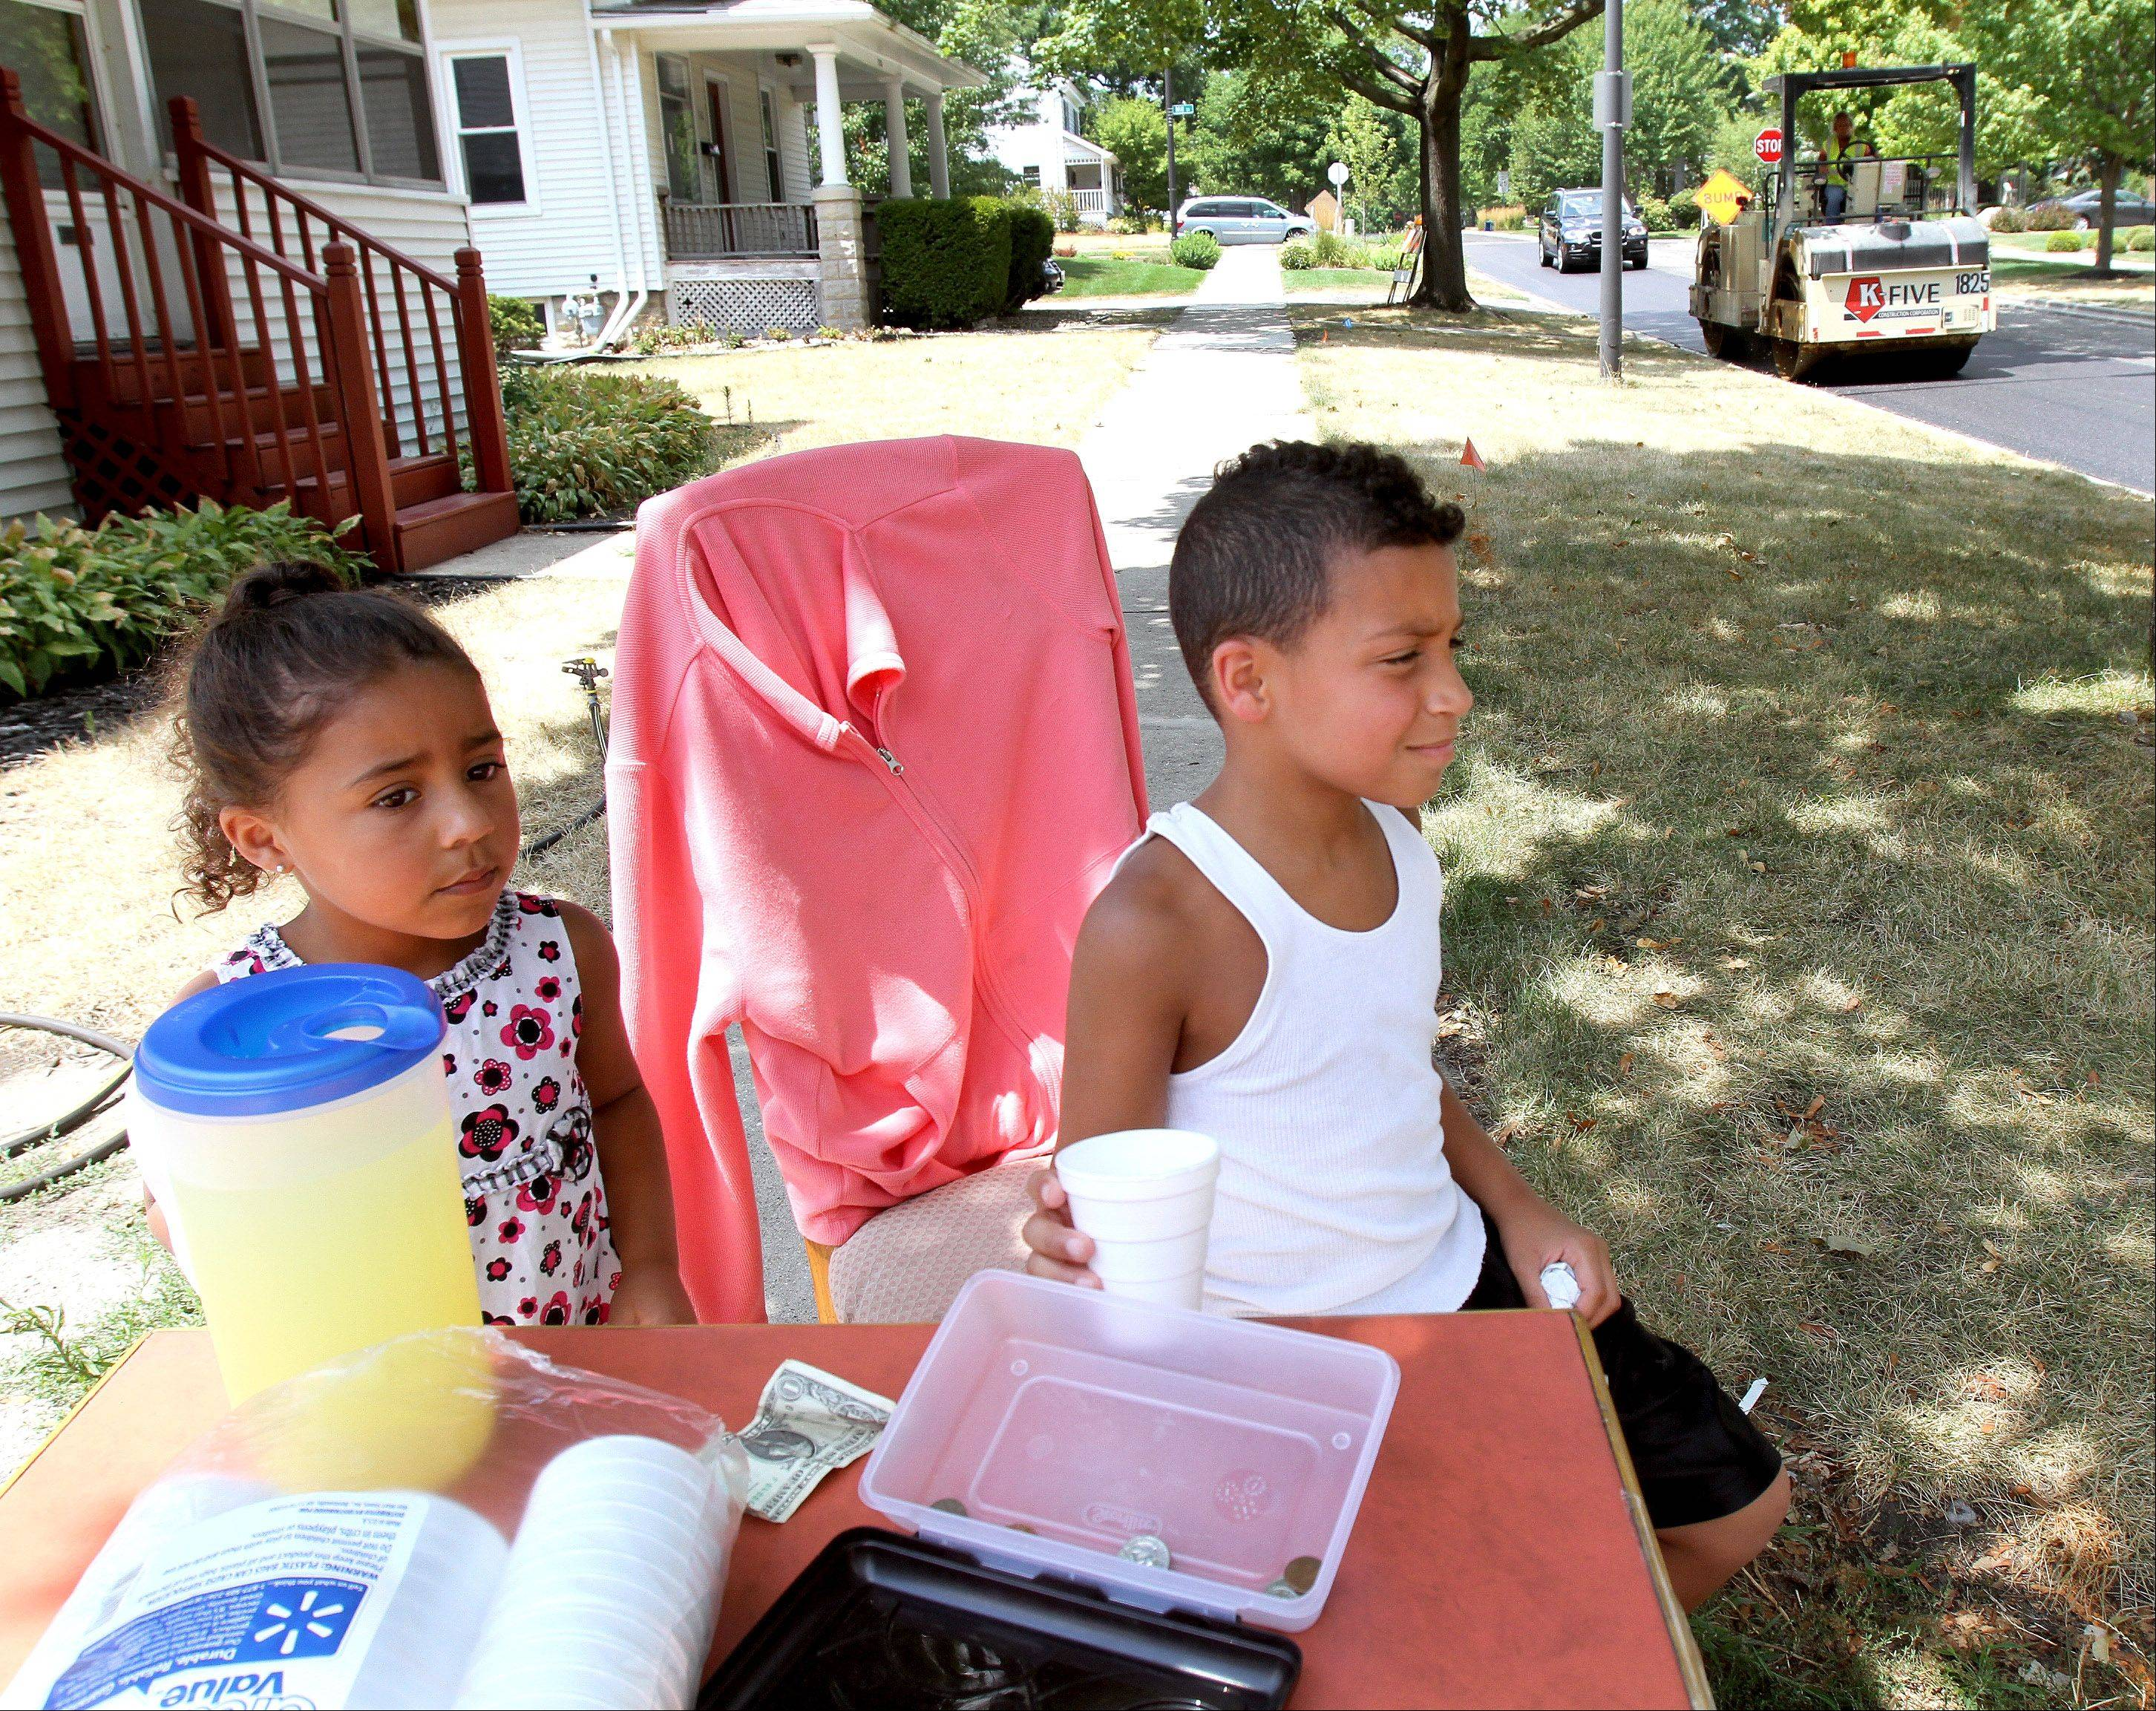 Laney Nelsom, 4 and her brother Bryan, 8, keep a lookout for potential customers at their lemonade stand in Naperville on Tuesday.